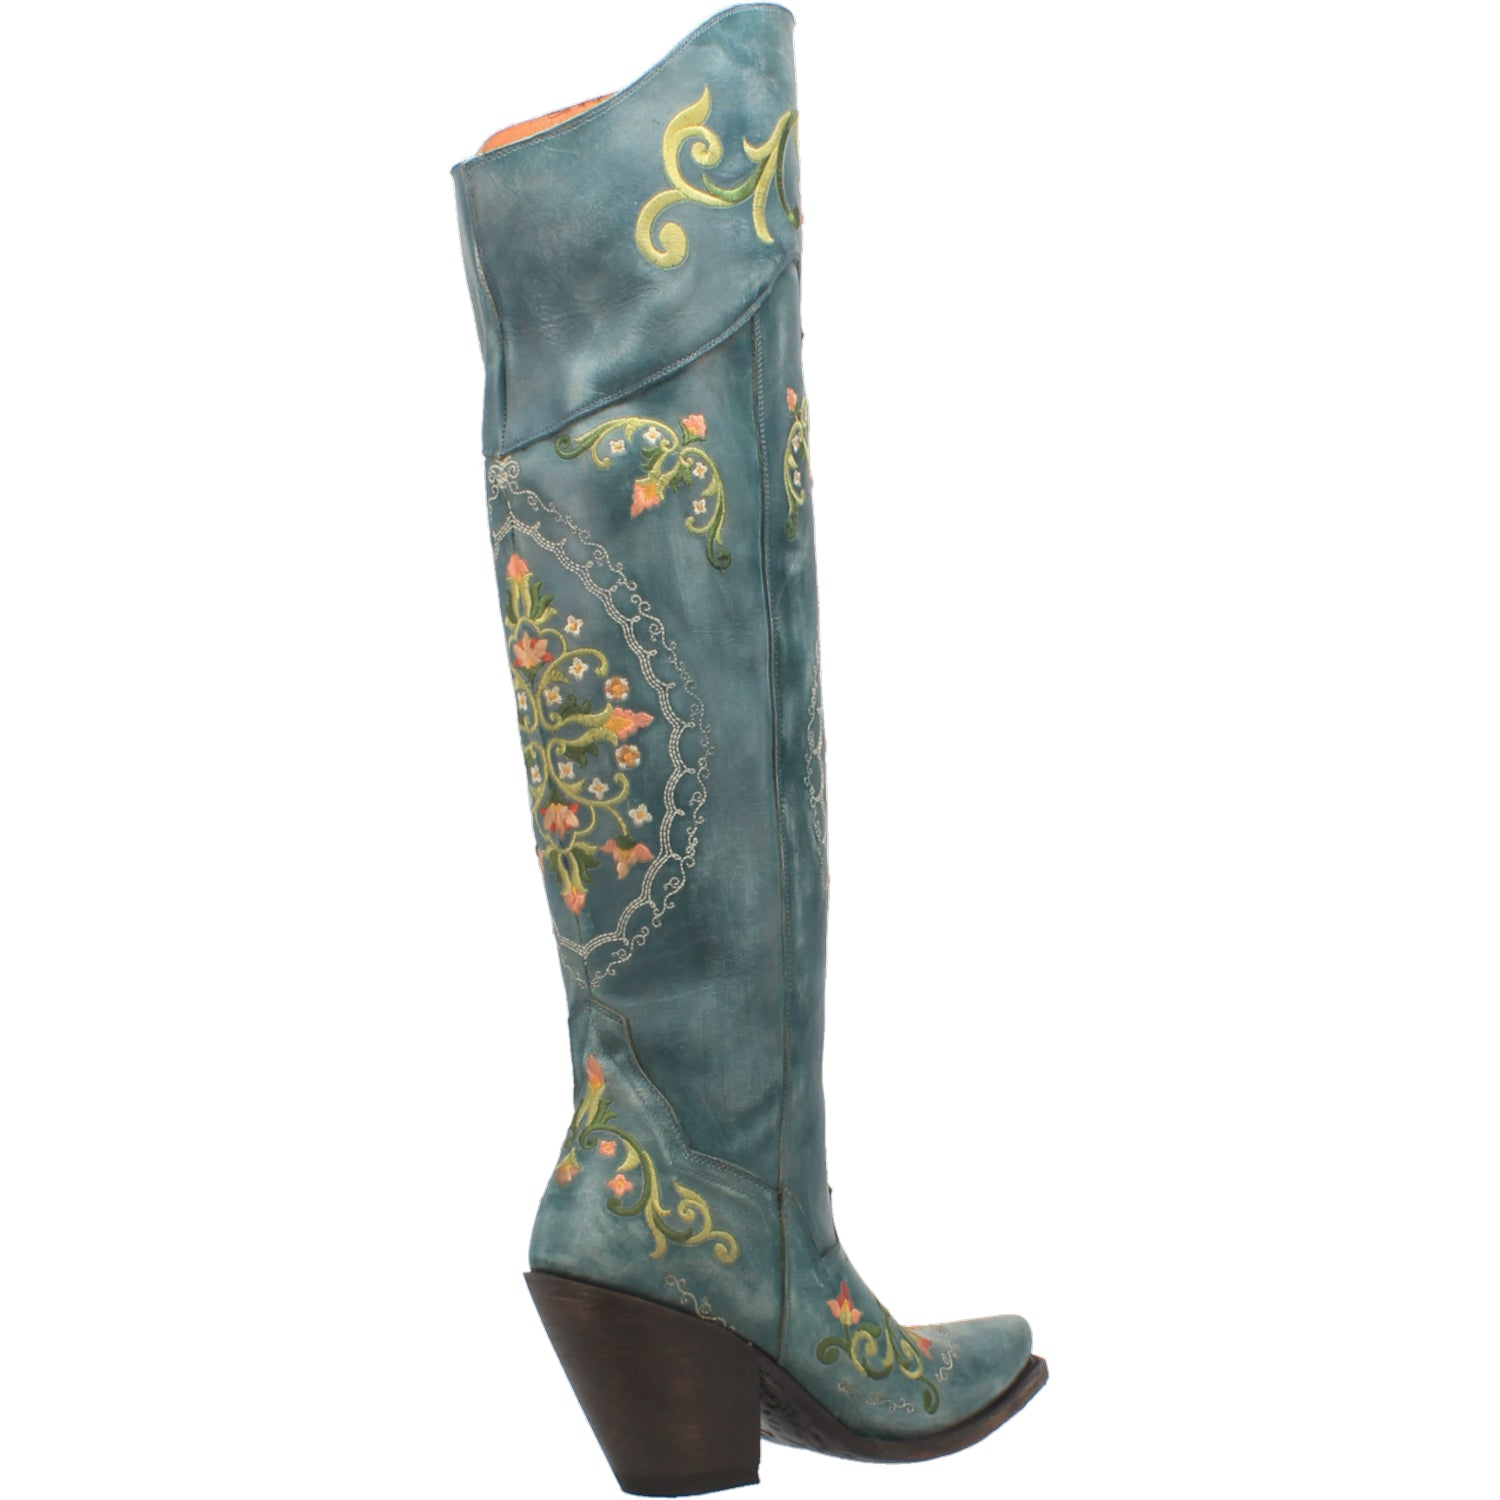 FLOWER CHILD LEATHER BOOT 15267551346730